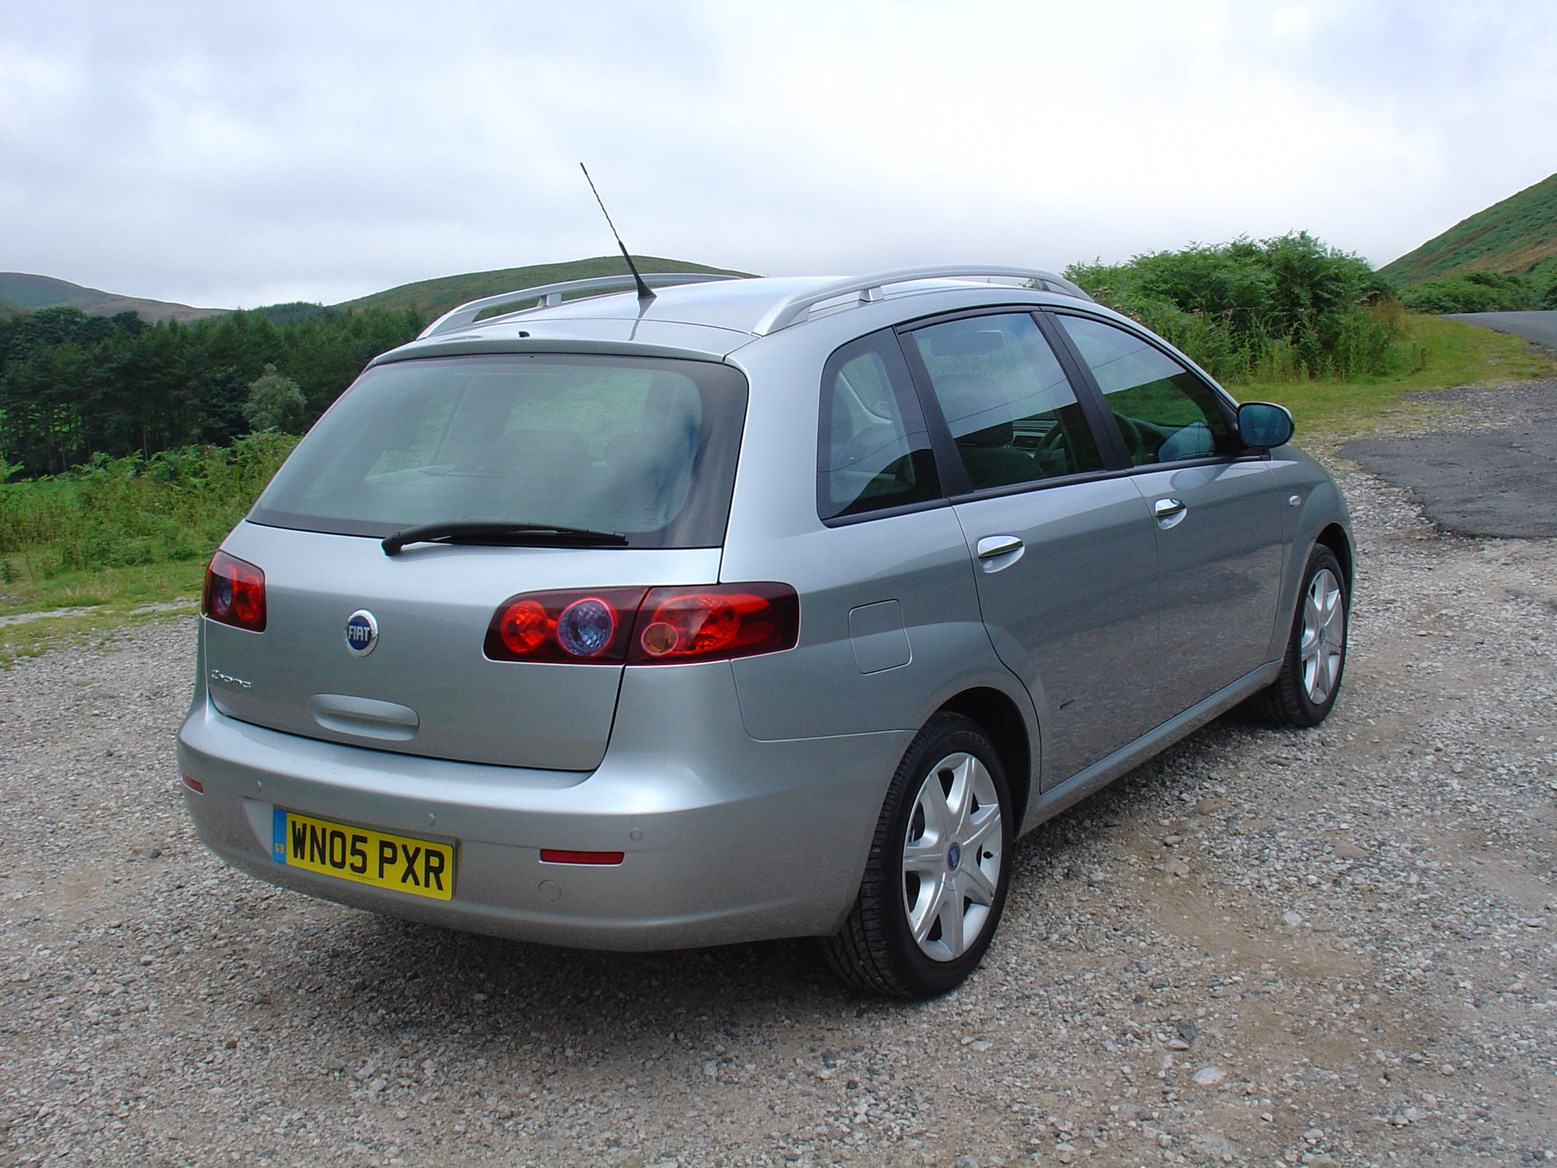 Fiat Croma Hatchback Review 2005 2007 Parkers